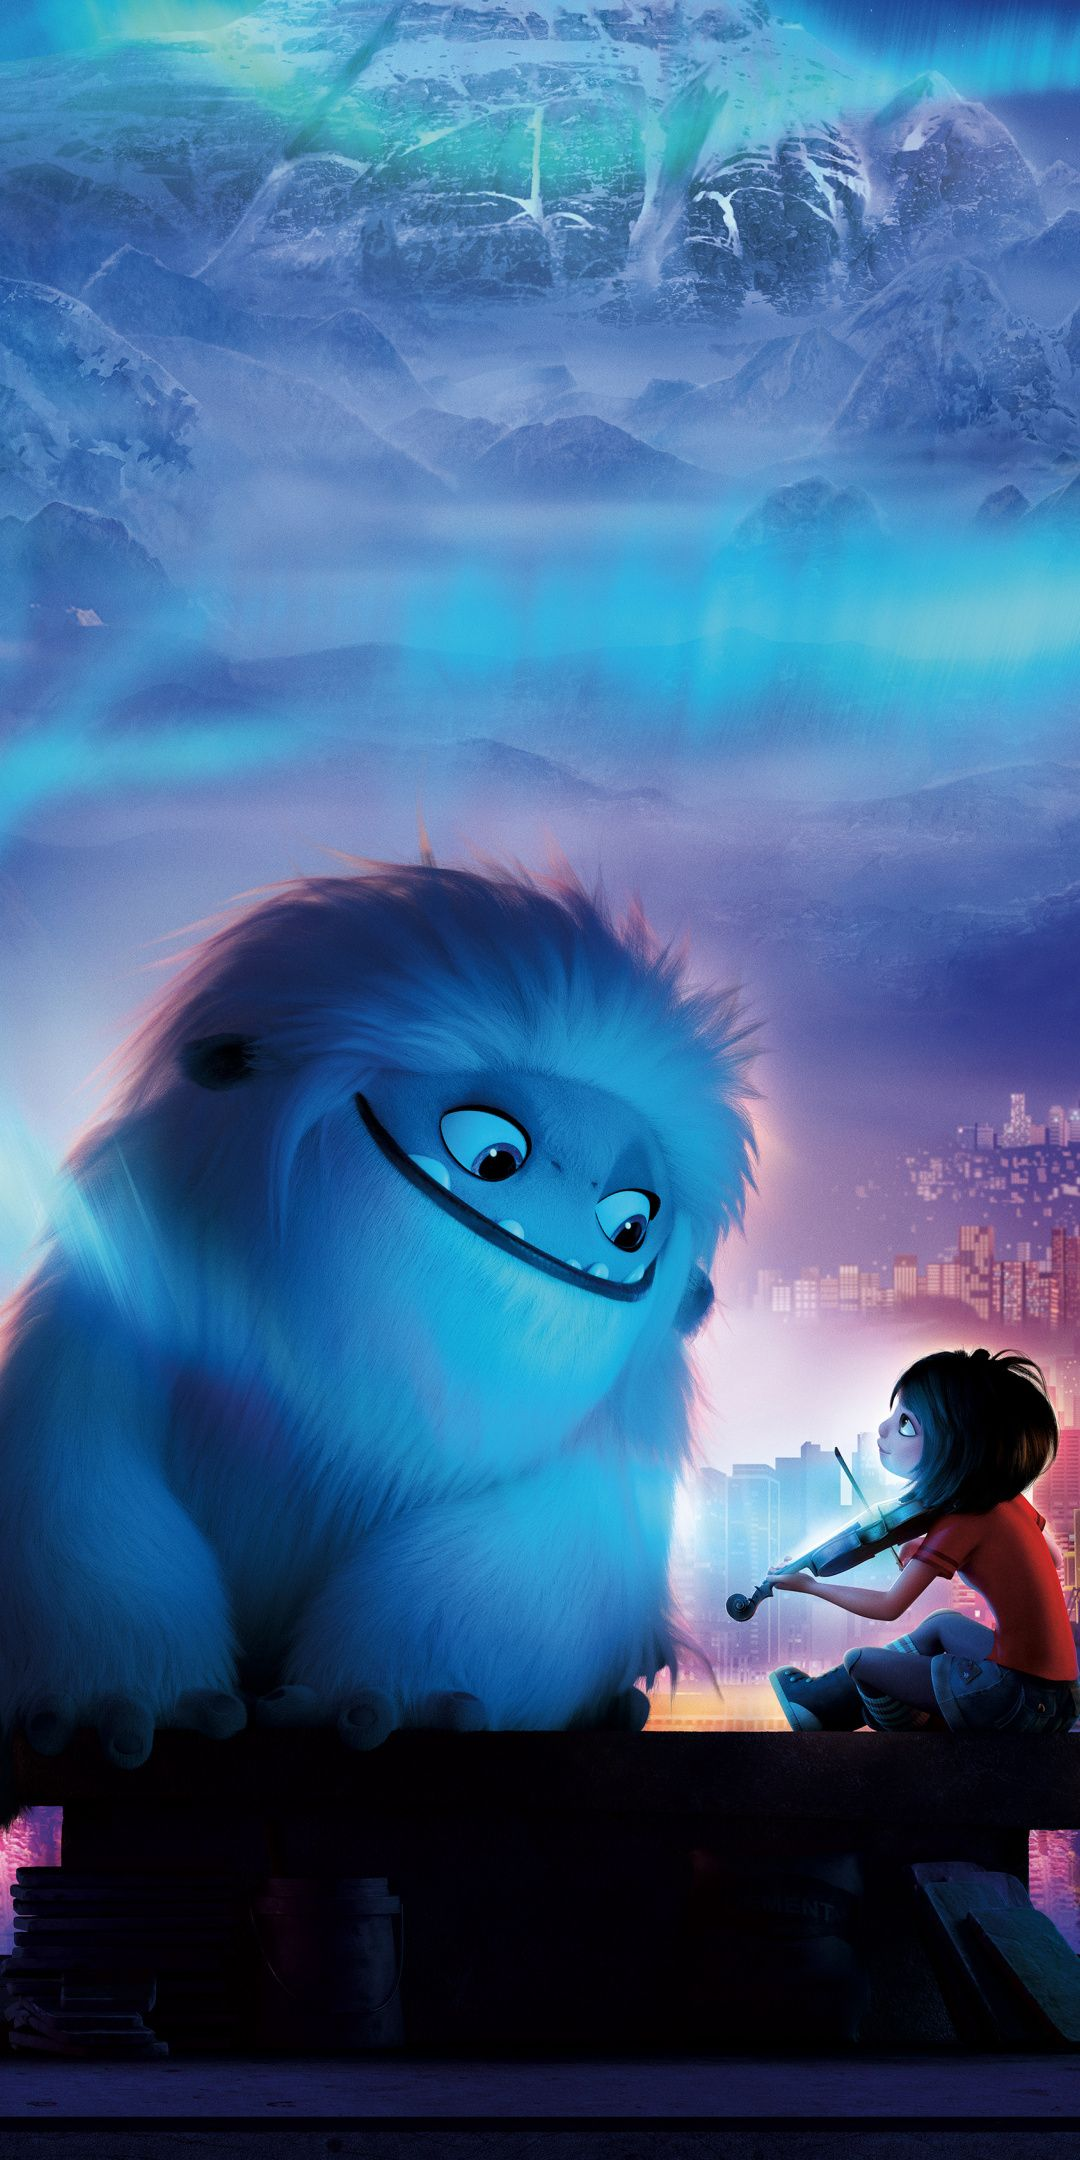 1080x2160 Abominable Yeti And Boy Animation Movie Wallpaper Disney Wallpaper Cute Disney Wallpaper Cartoon Wallpaper